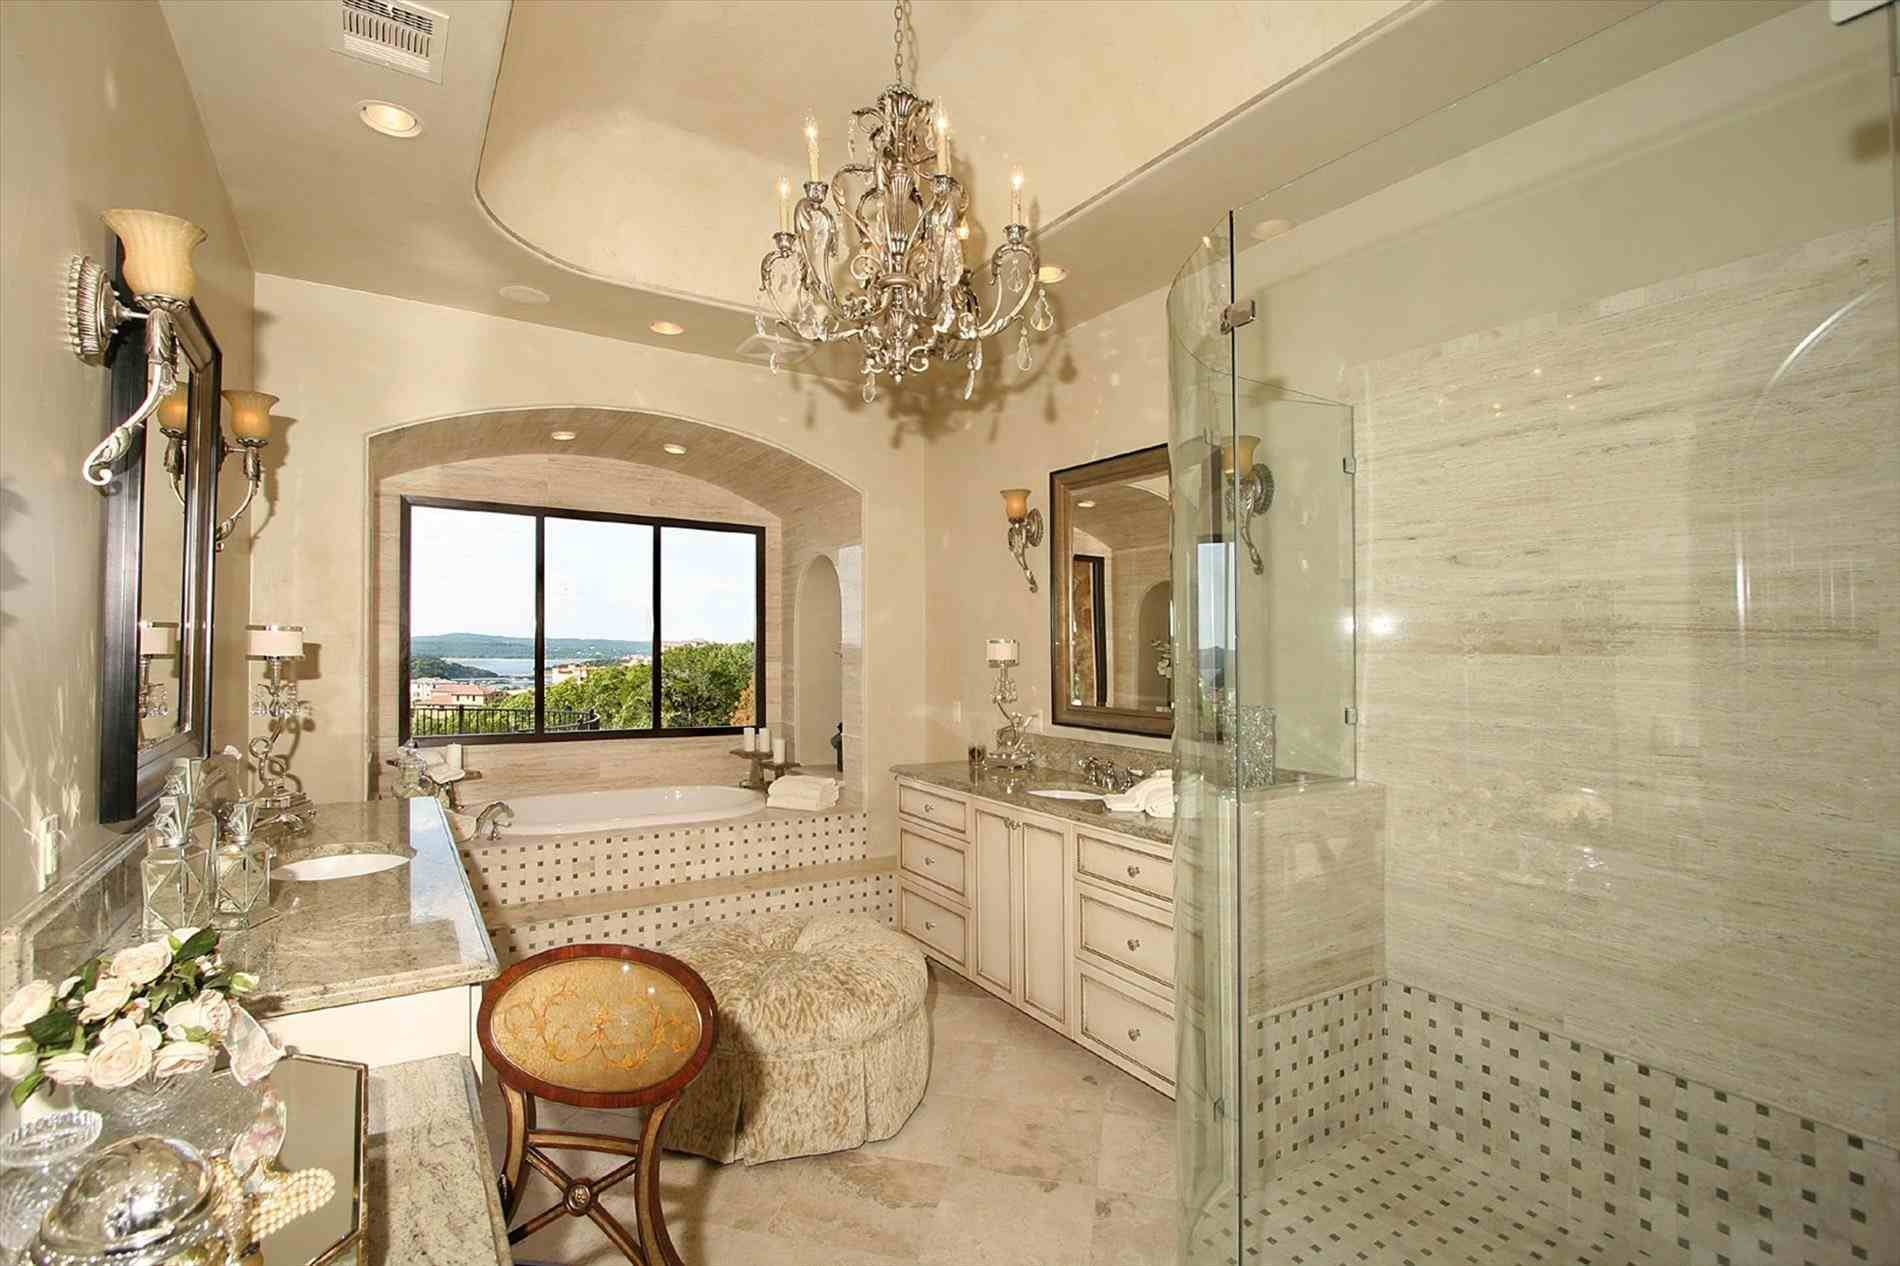 High Quality New Post Luxury Master Bathroom Shower Visit Bobayule Trending Decors |  Home Ideas | Pinterest